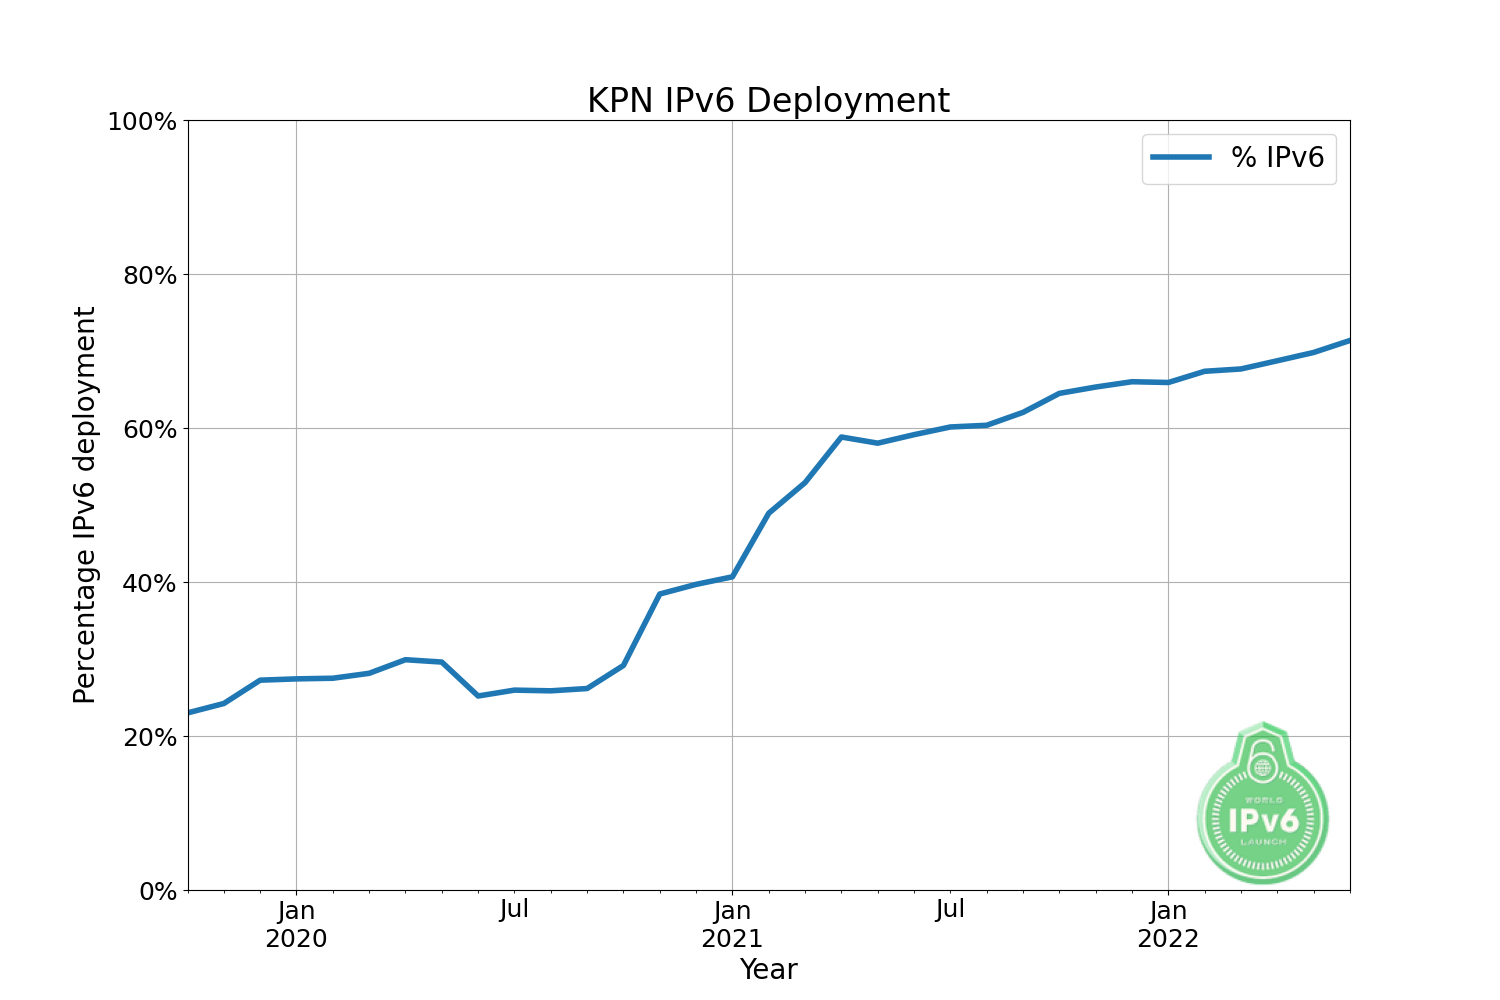 http://www.worldipv6launch.org/apps/ipv6week/measurement/images/graphs/KPN.png